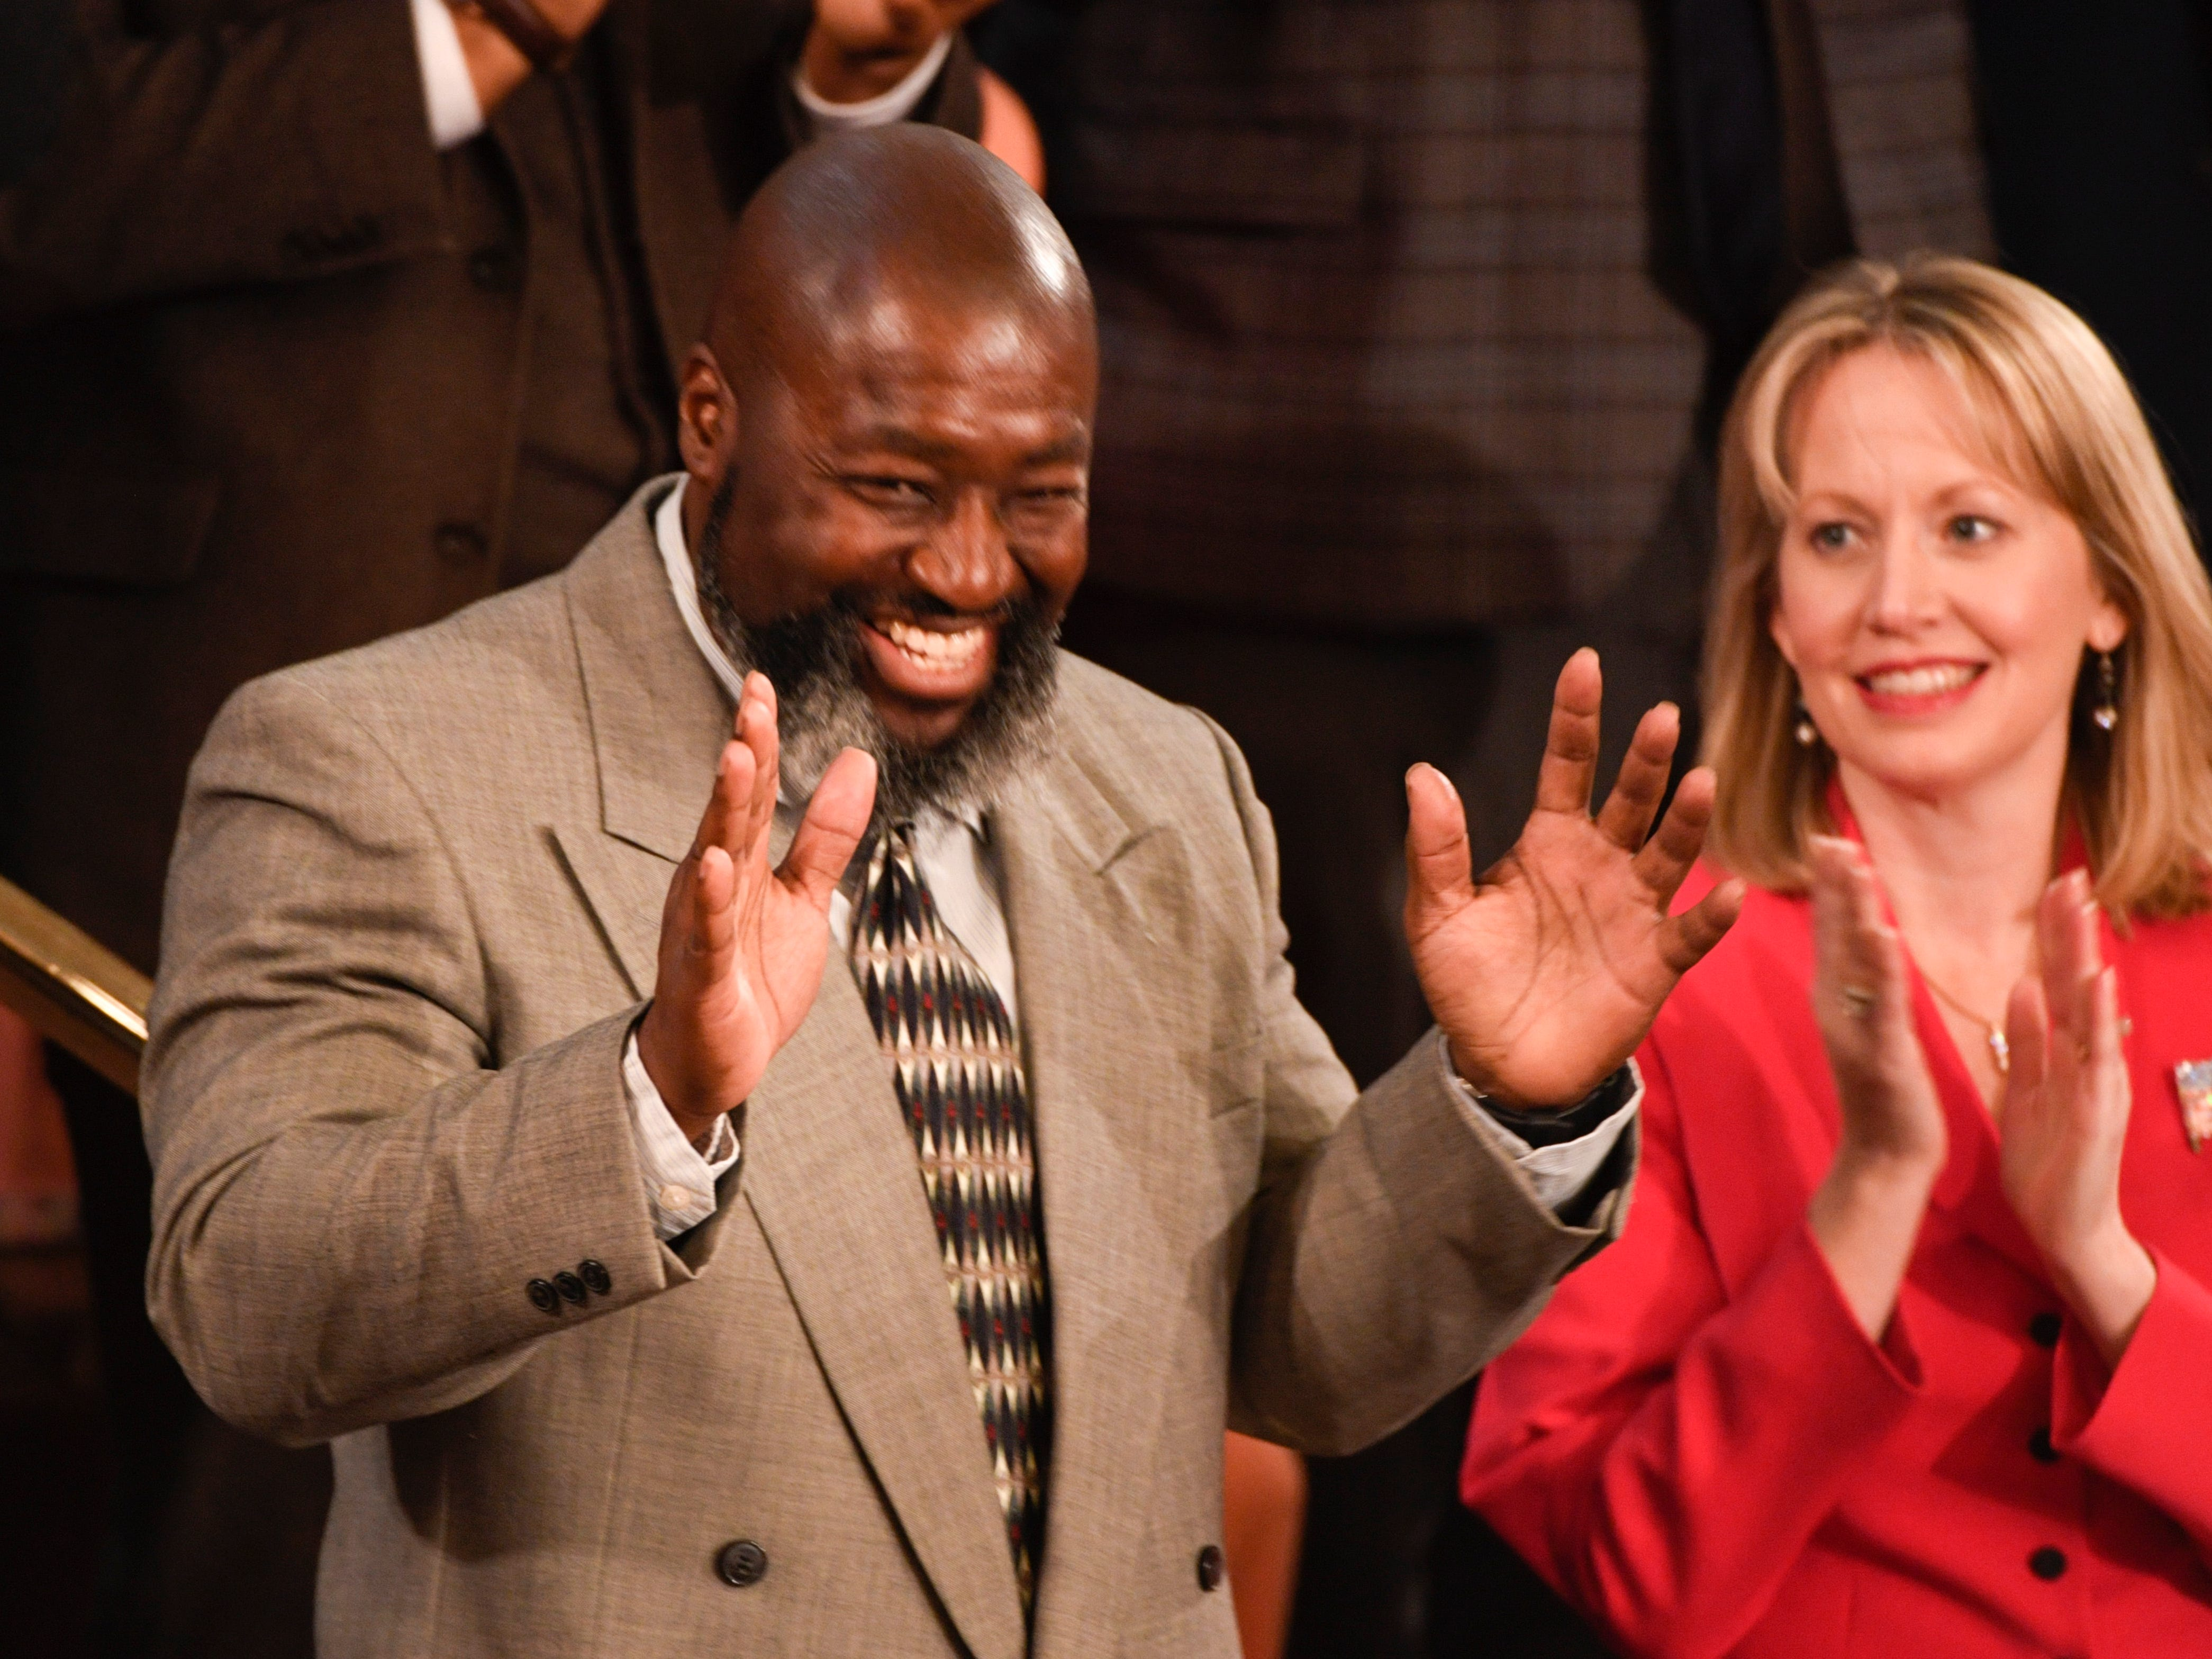 Matthew Charles is recognized by President Donald Trump as he delivers the State of the Union address. Charles was one of the first people released fro prison under the First Step Act.